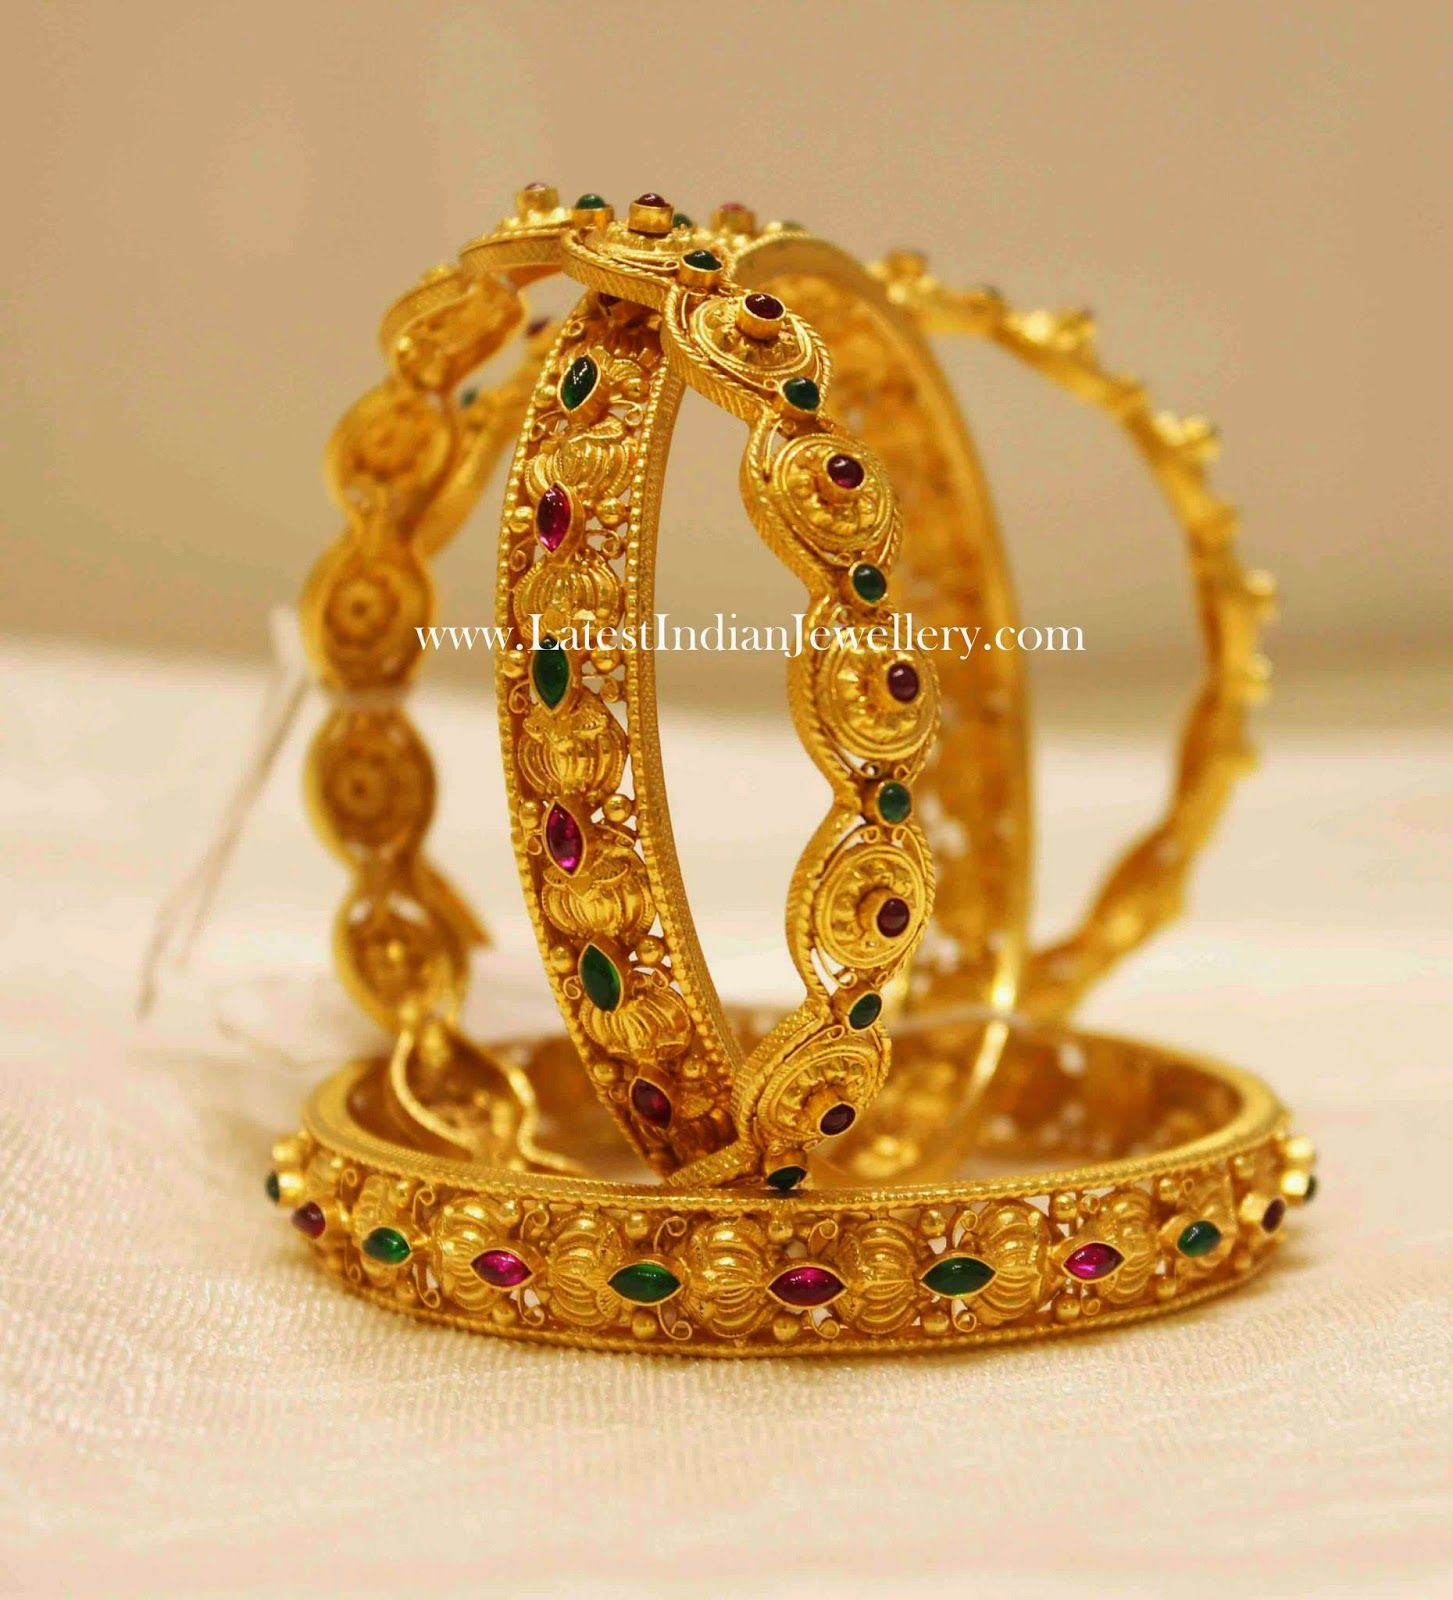 Latest Gold Bangles with Ruby Emeralds | Gold bangles, Bangle and ...